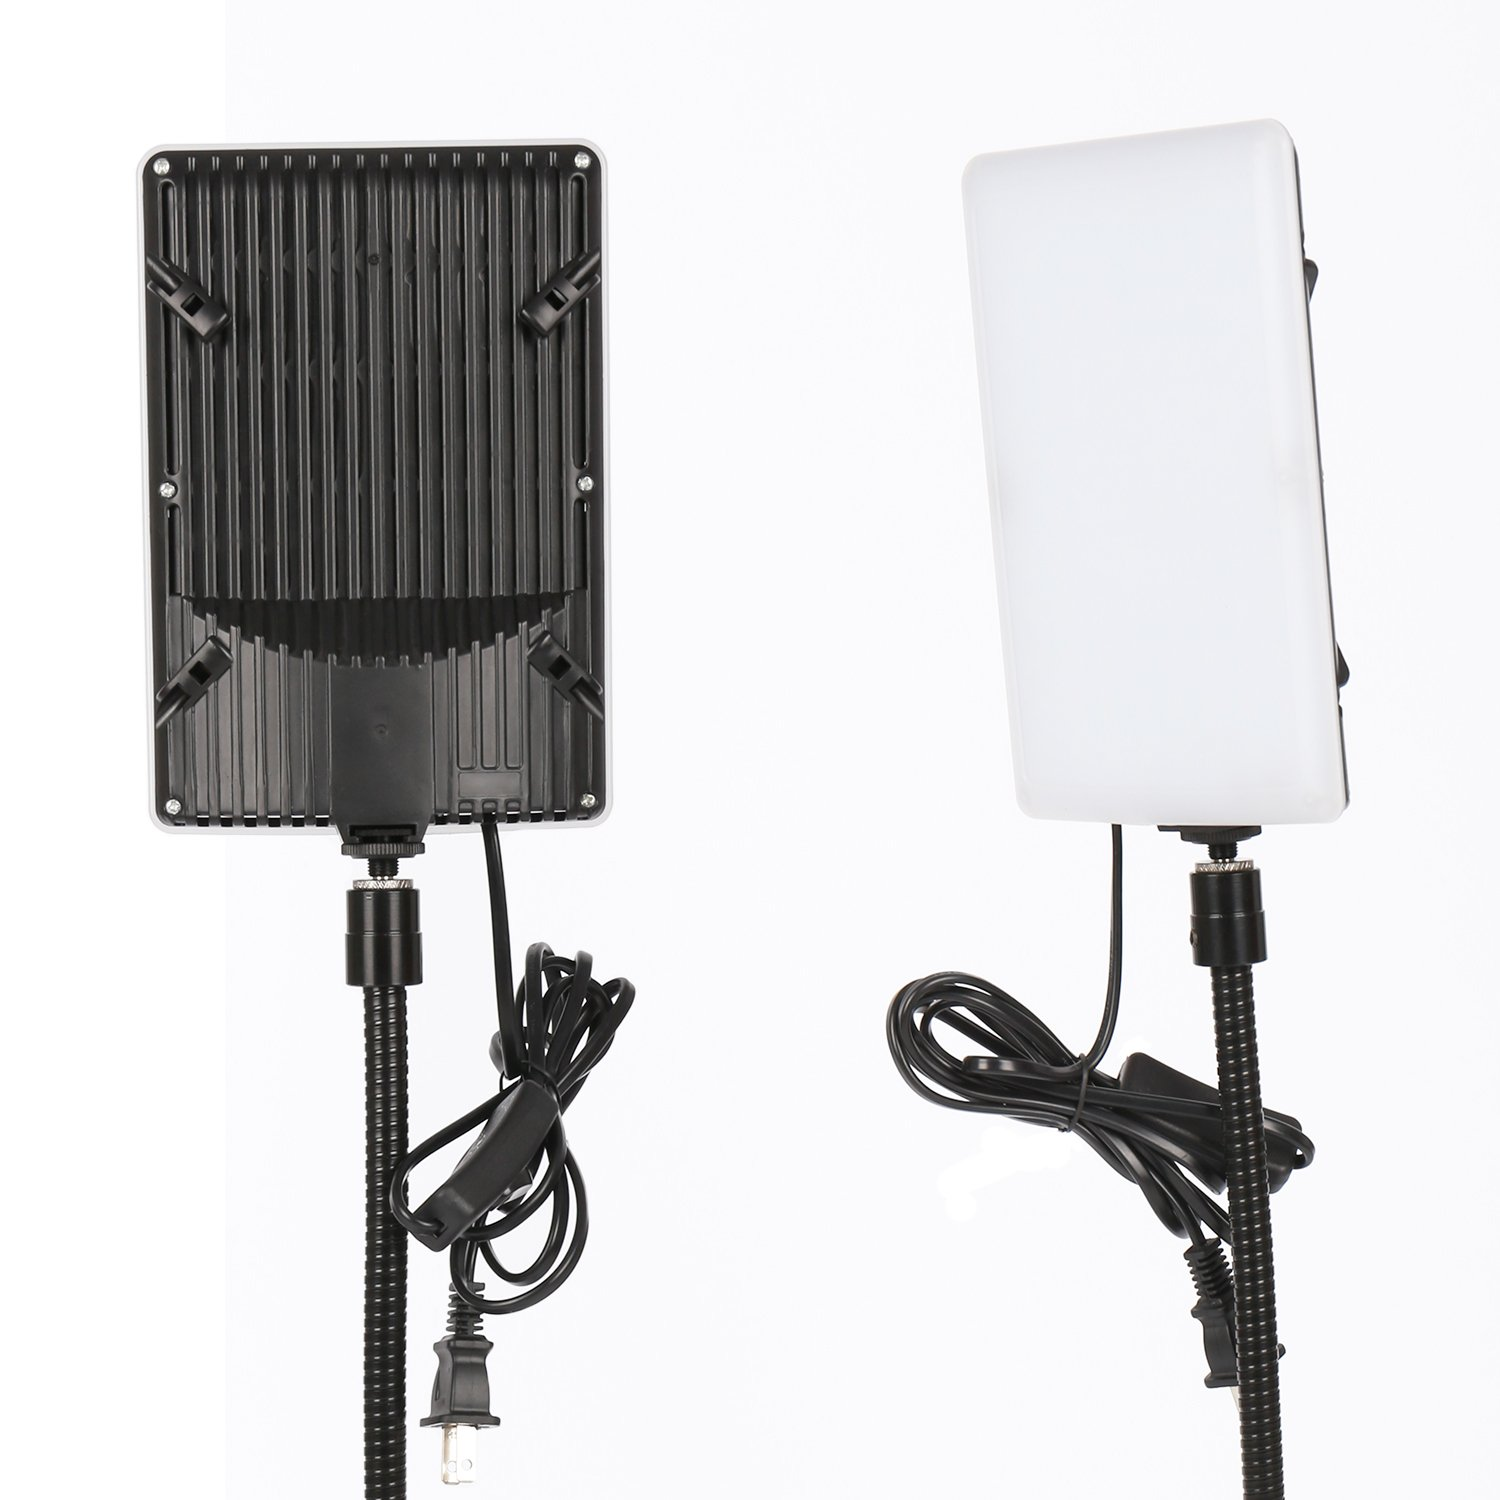 LS Photography LED Light Panel with Gooseneck Extension Adapter and Acrylic Black & White Reflective Display Table Riser, Table Top Photo Video Lighting Kit, LGG765 by LS Photography (Image #4)